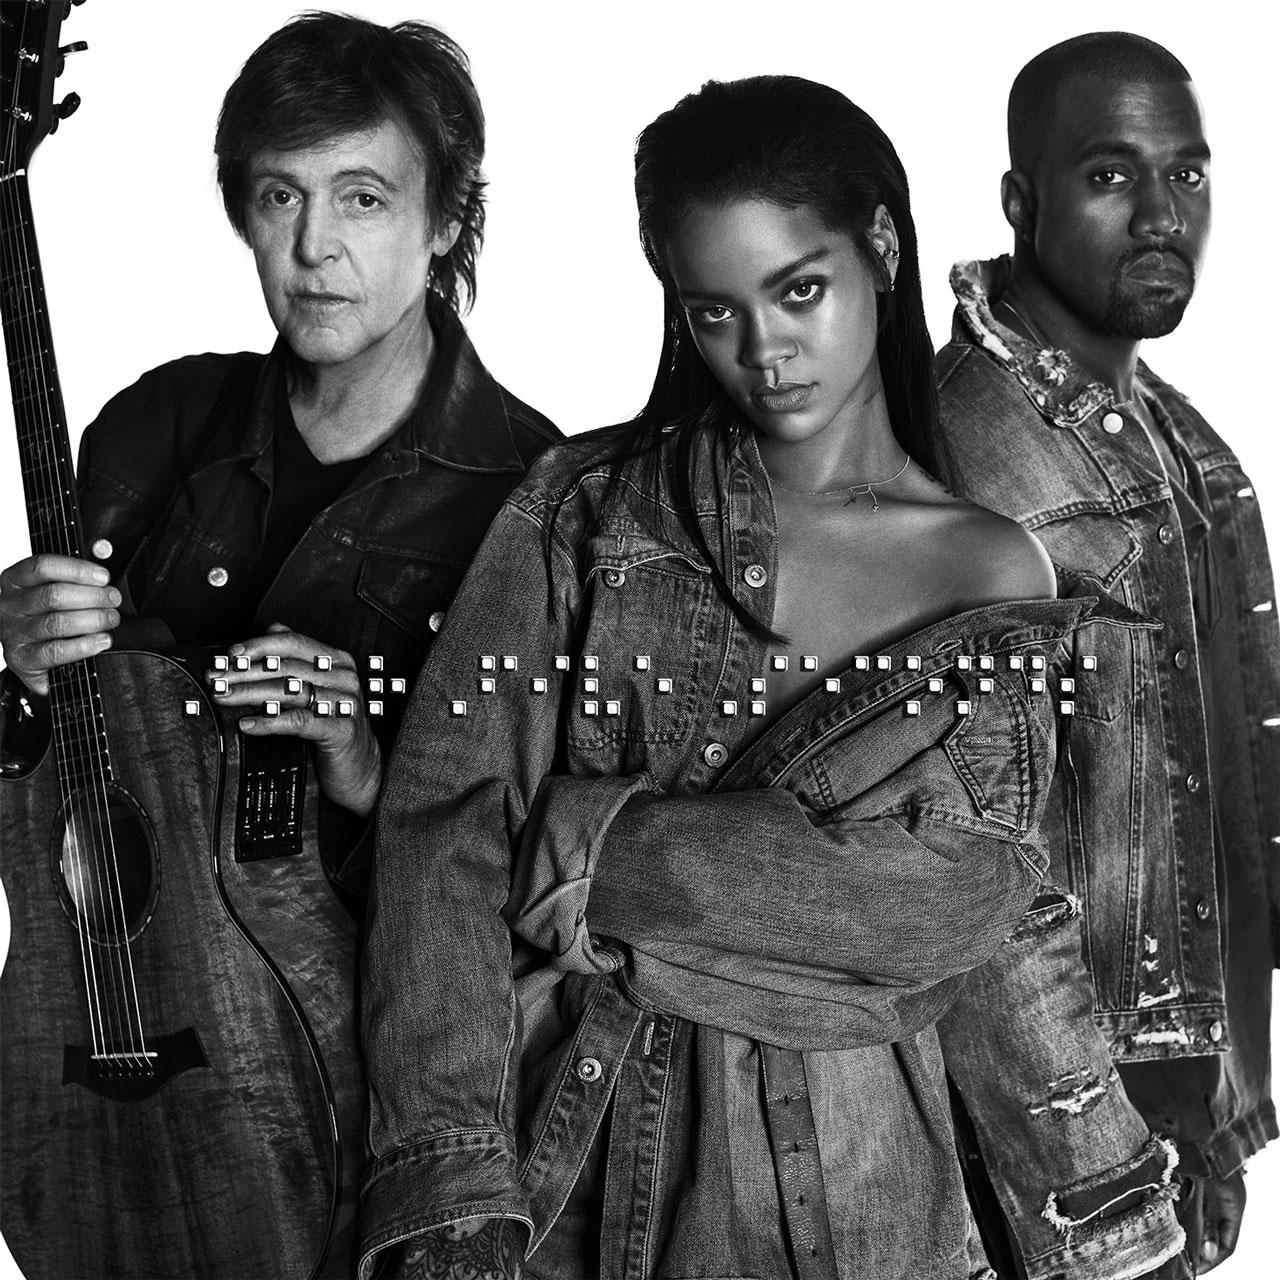 We interrupt this Sunday to bring you Kanye, Paul McCartney and RIHANNA